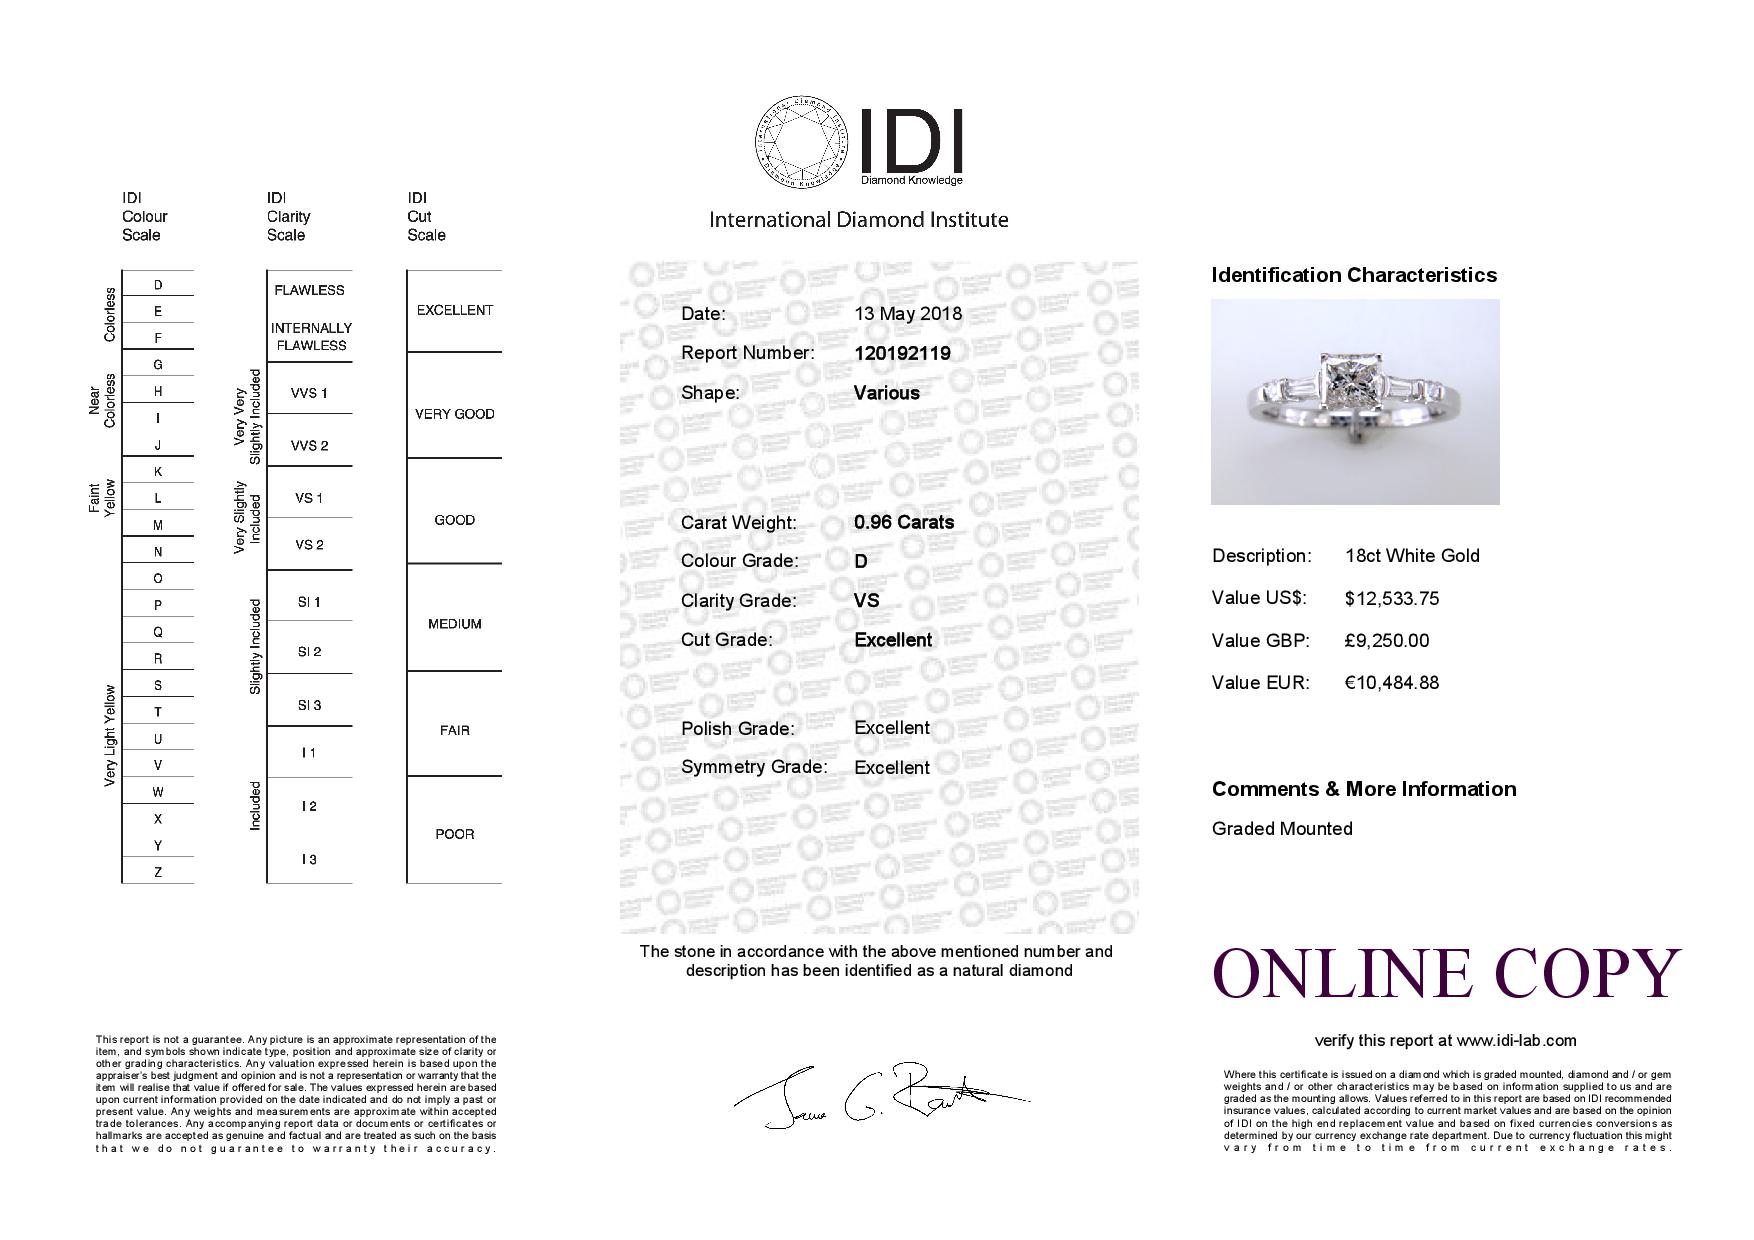 18ct White Gold Single Stone Princess Cut Diamond Ring With Set Shoulders (0.72) 0.96 Carats - Image 5 of 5